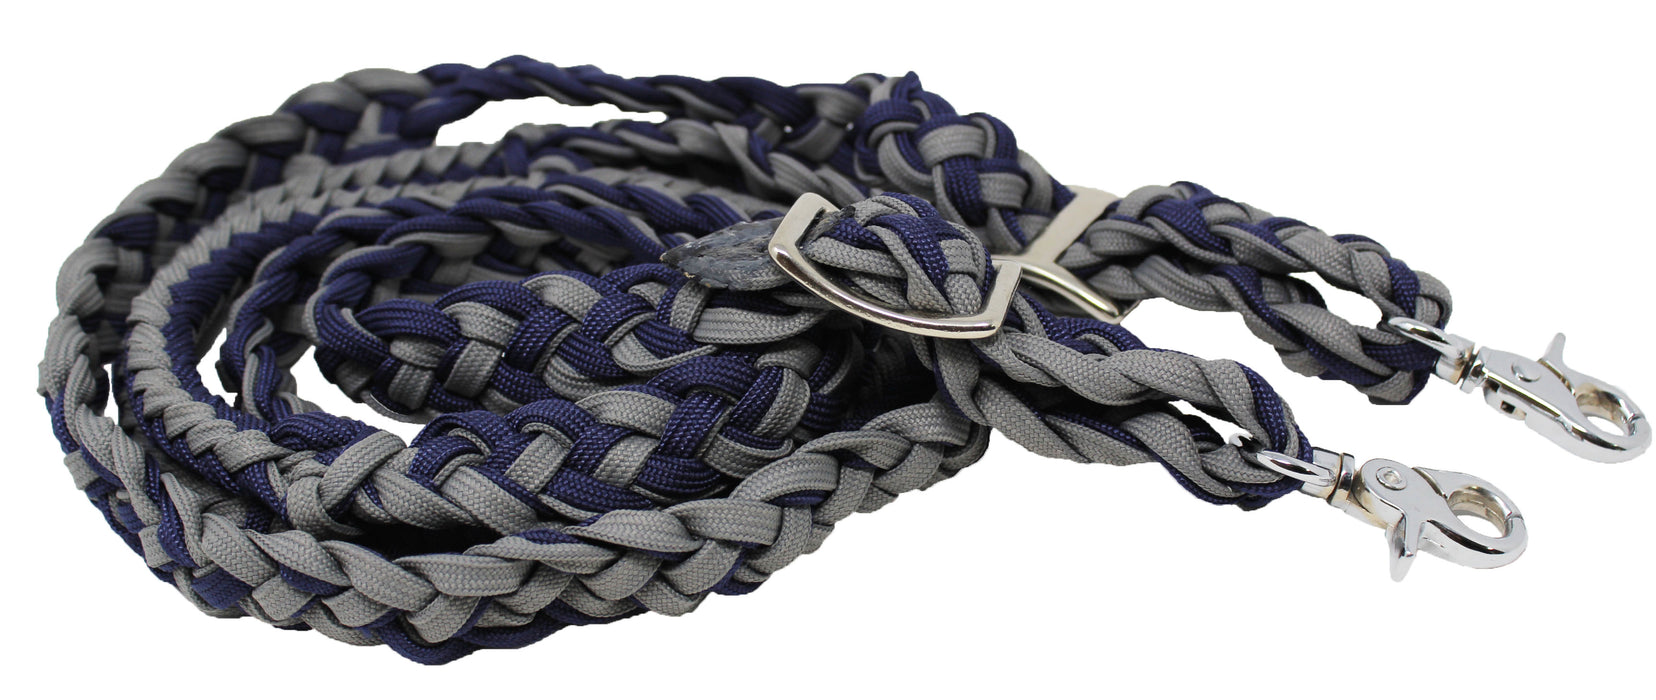 Horse Roping Knotted Horse Tack Western Barrel Reins Nylon Braided Navy 607135